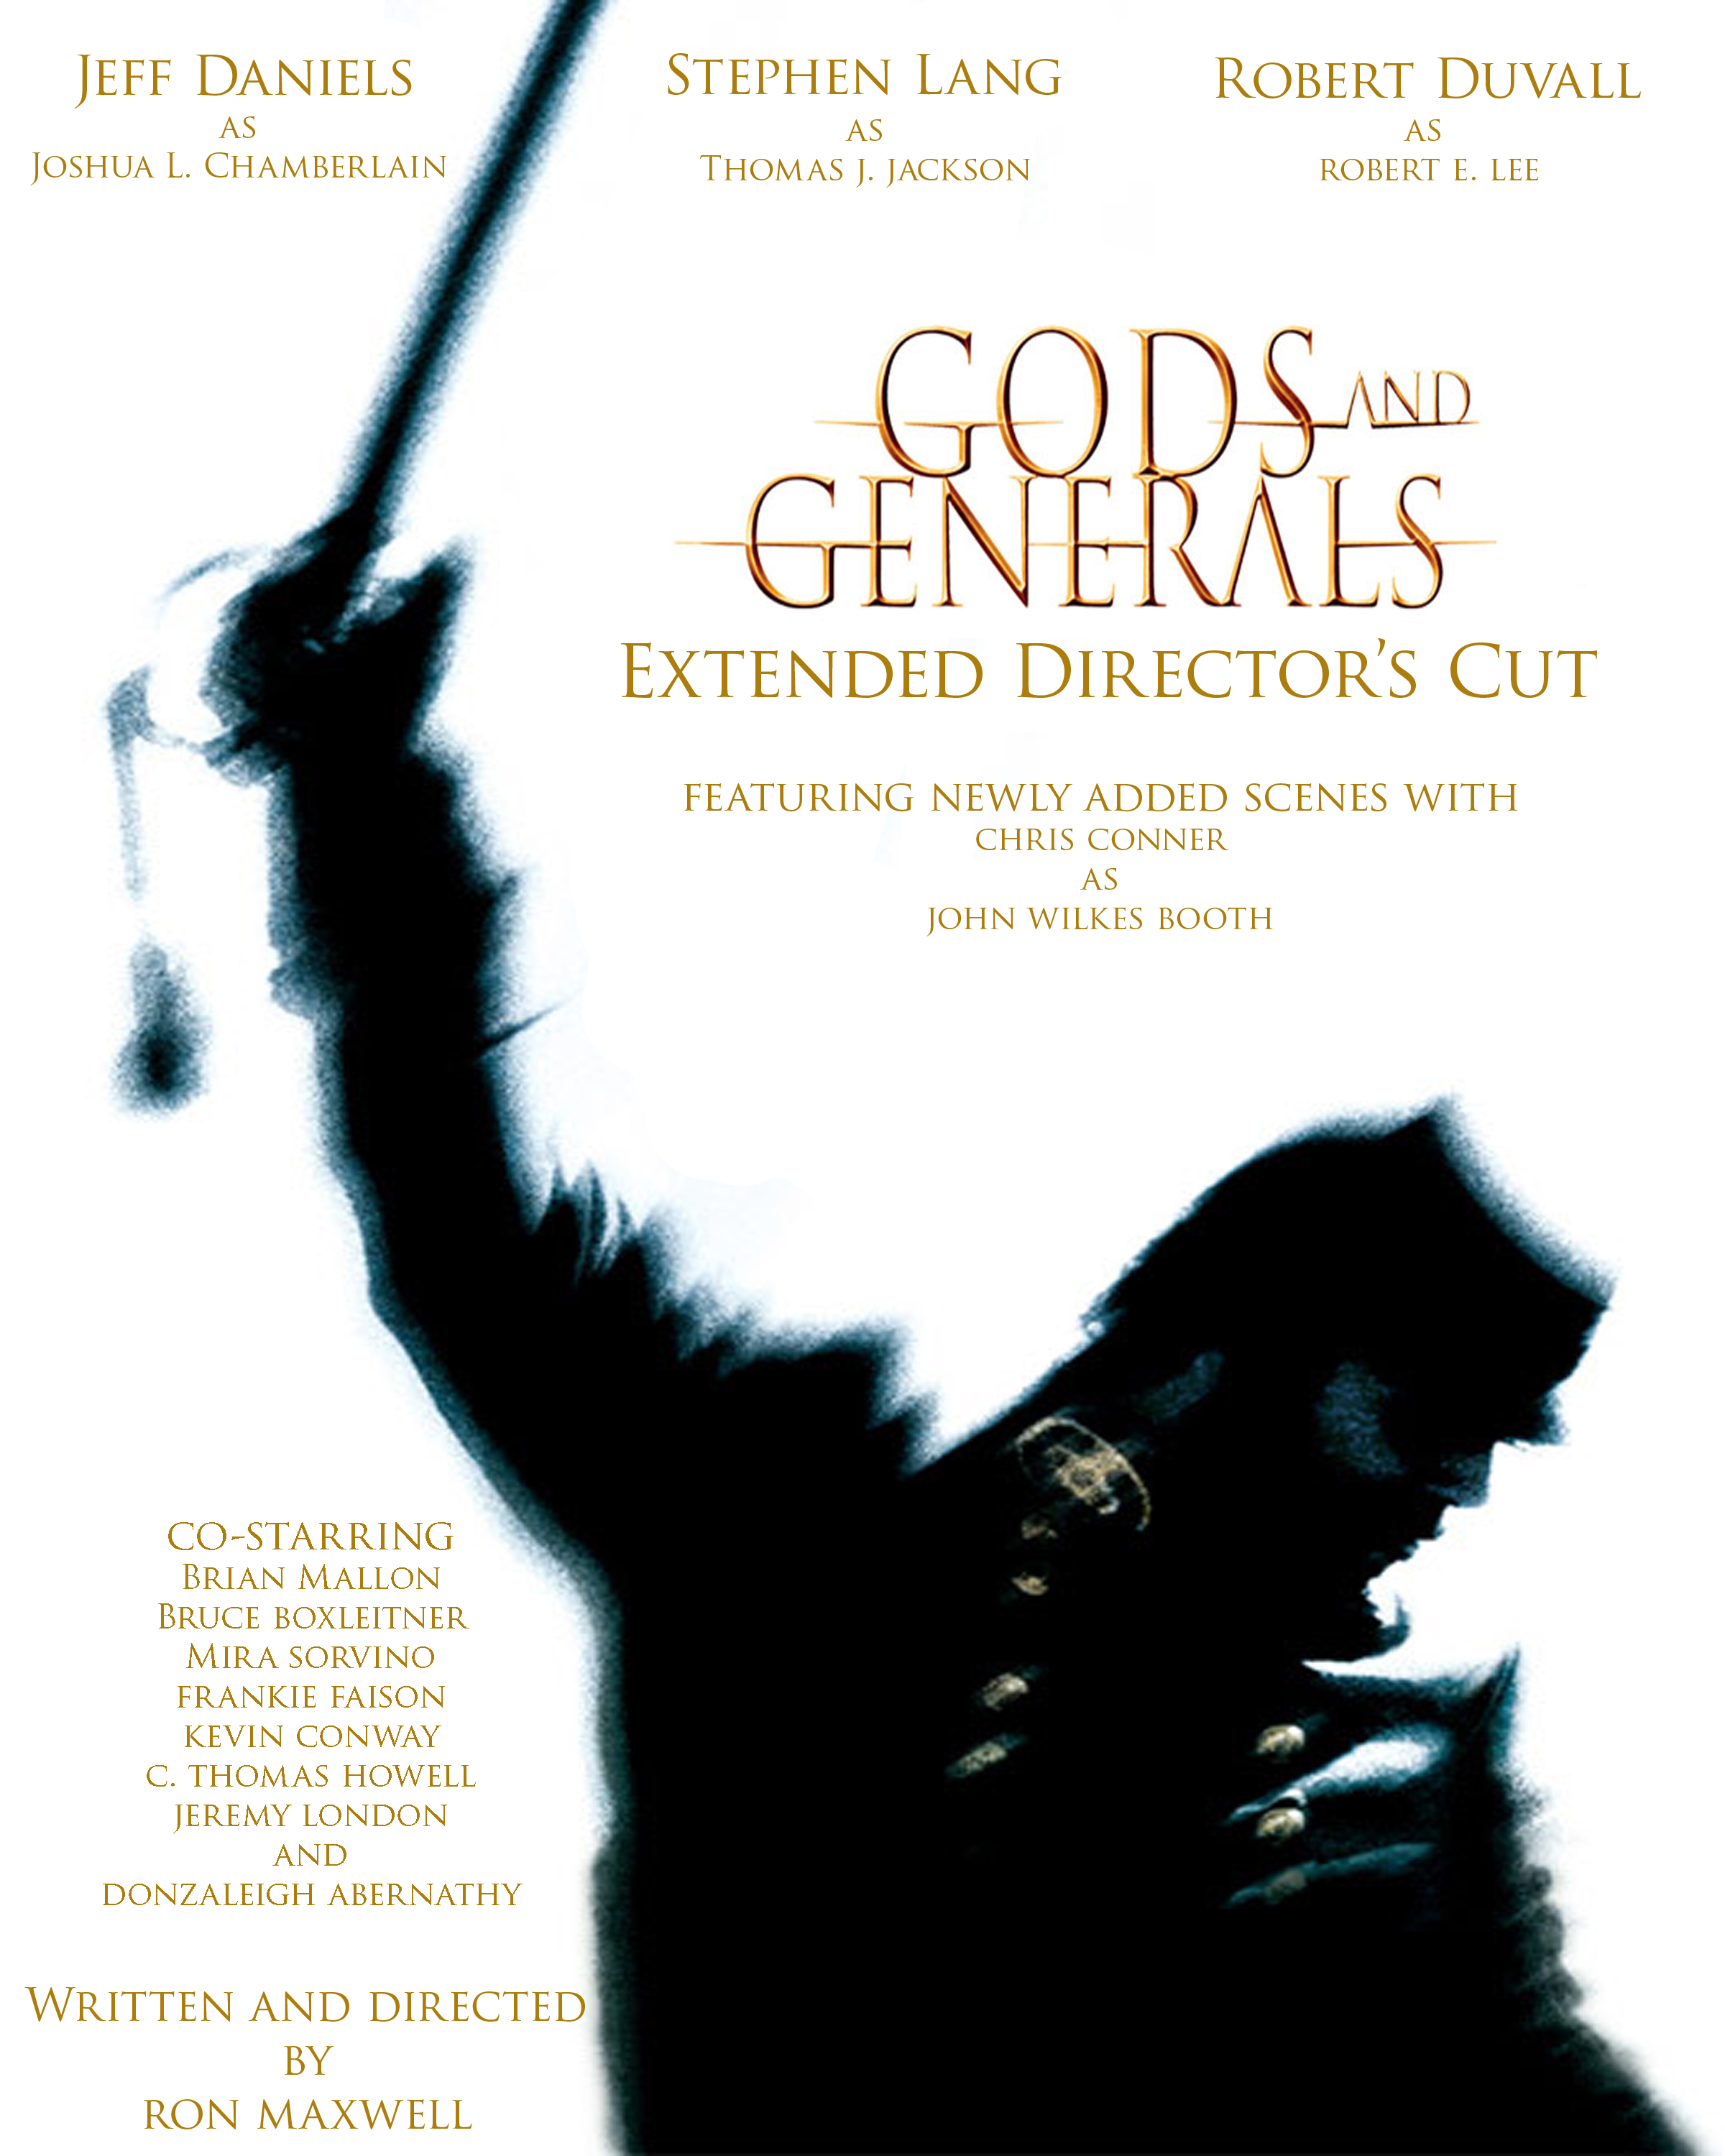 Gods and generals affiche